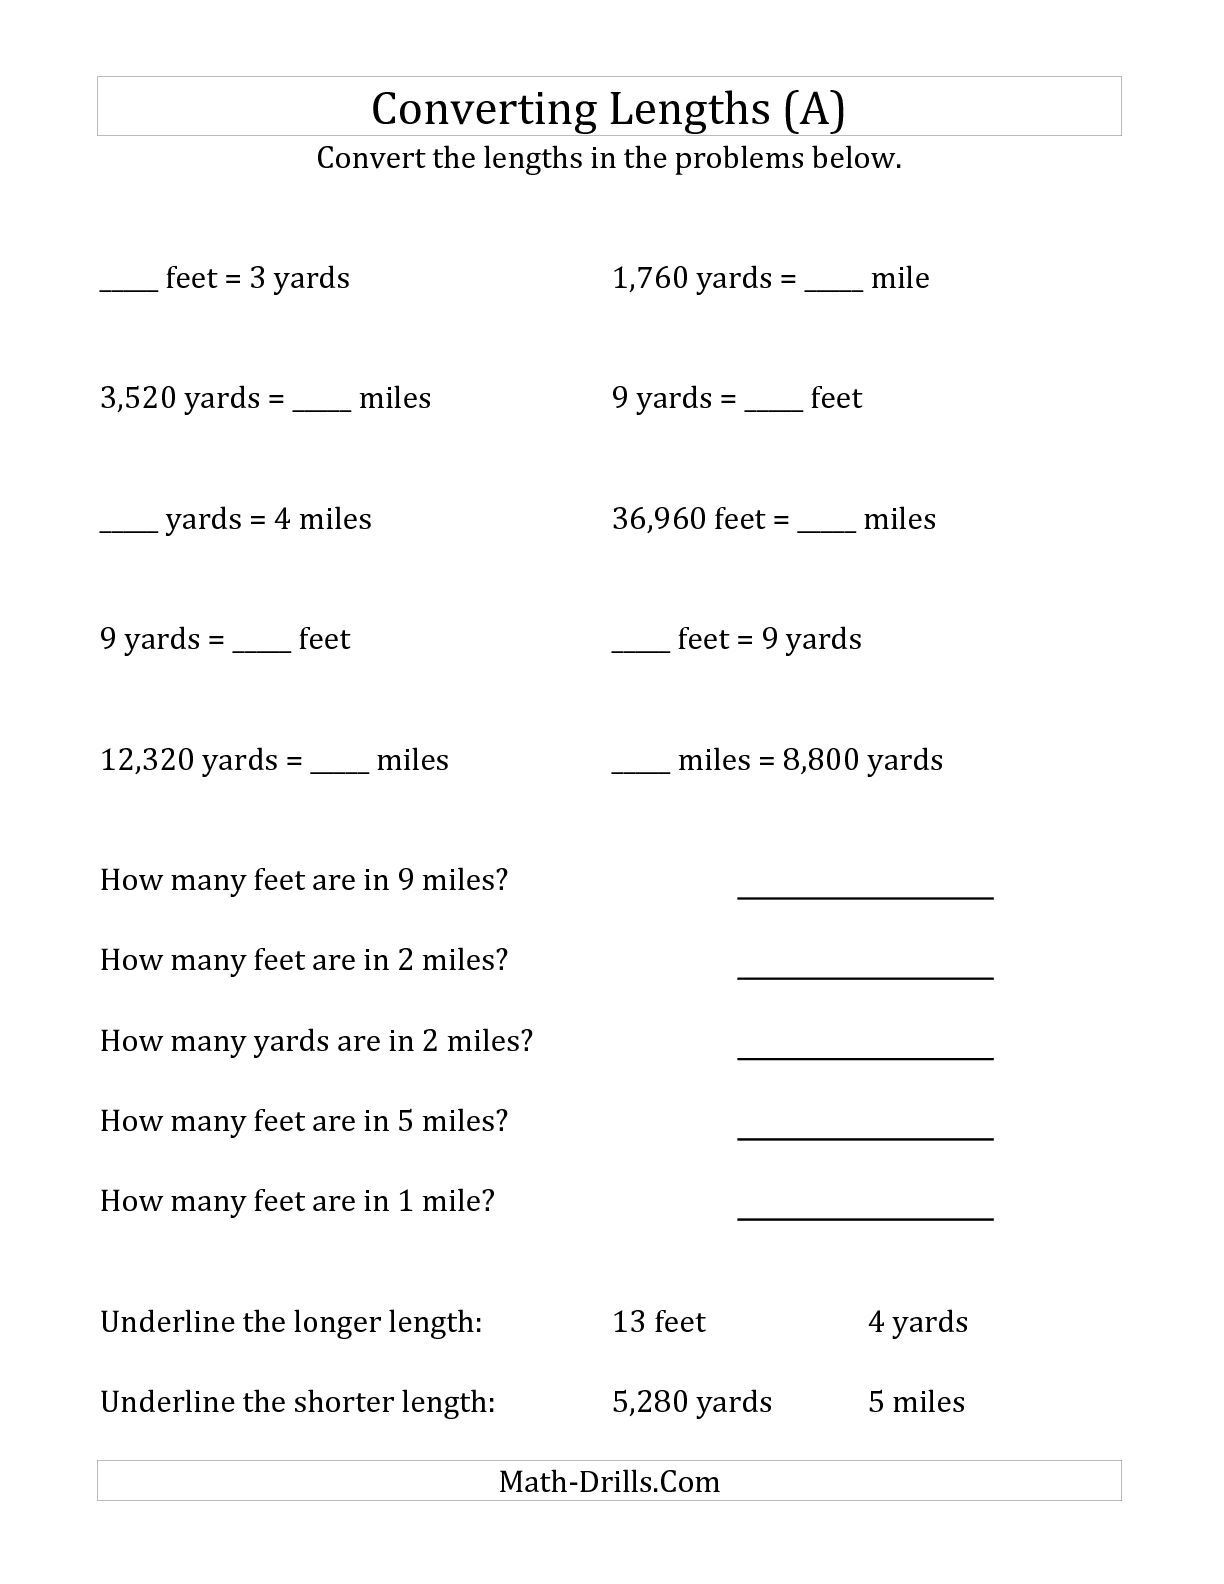 Math Conversion Worksheets 5th Grade the Converting Between U S Feet Yards and Miles A